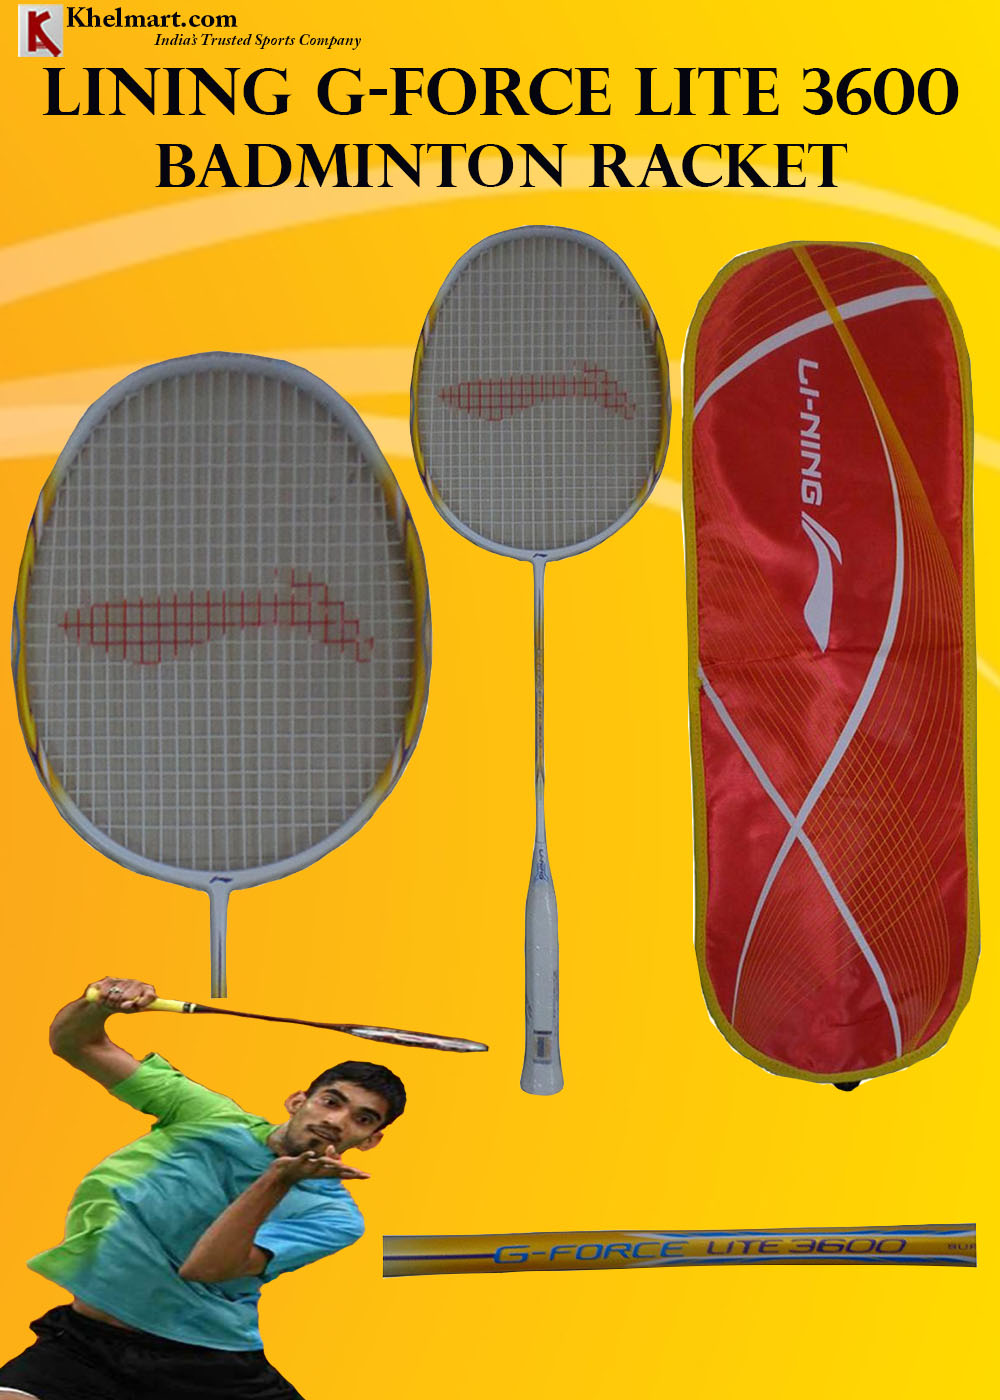 LiNing G Force Lite 3600 Badminton Racket